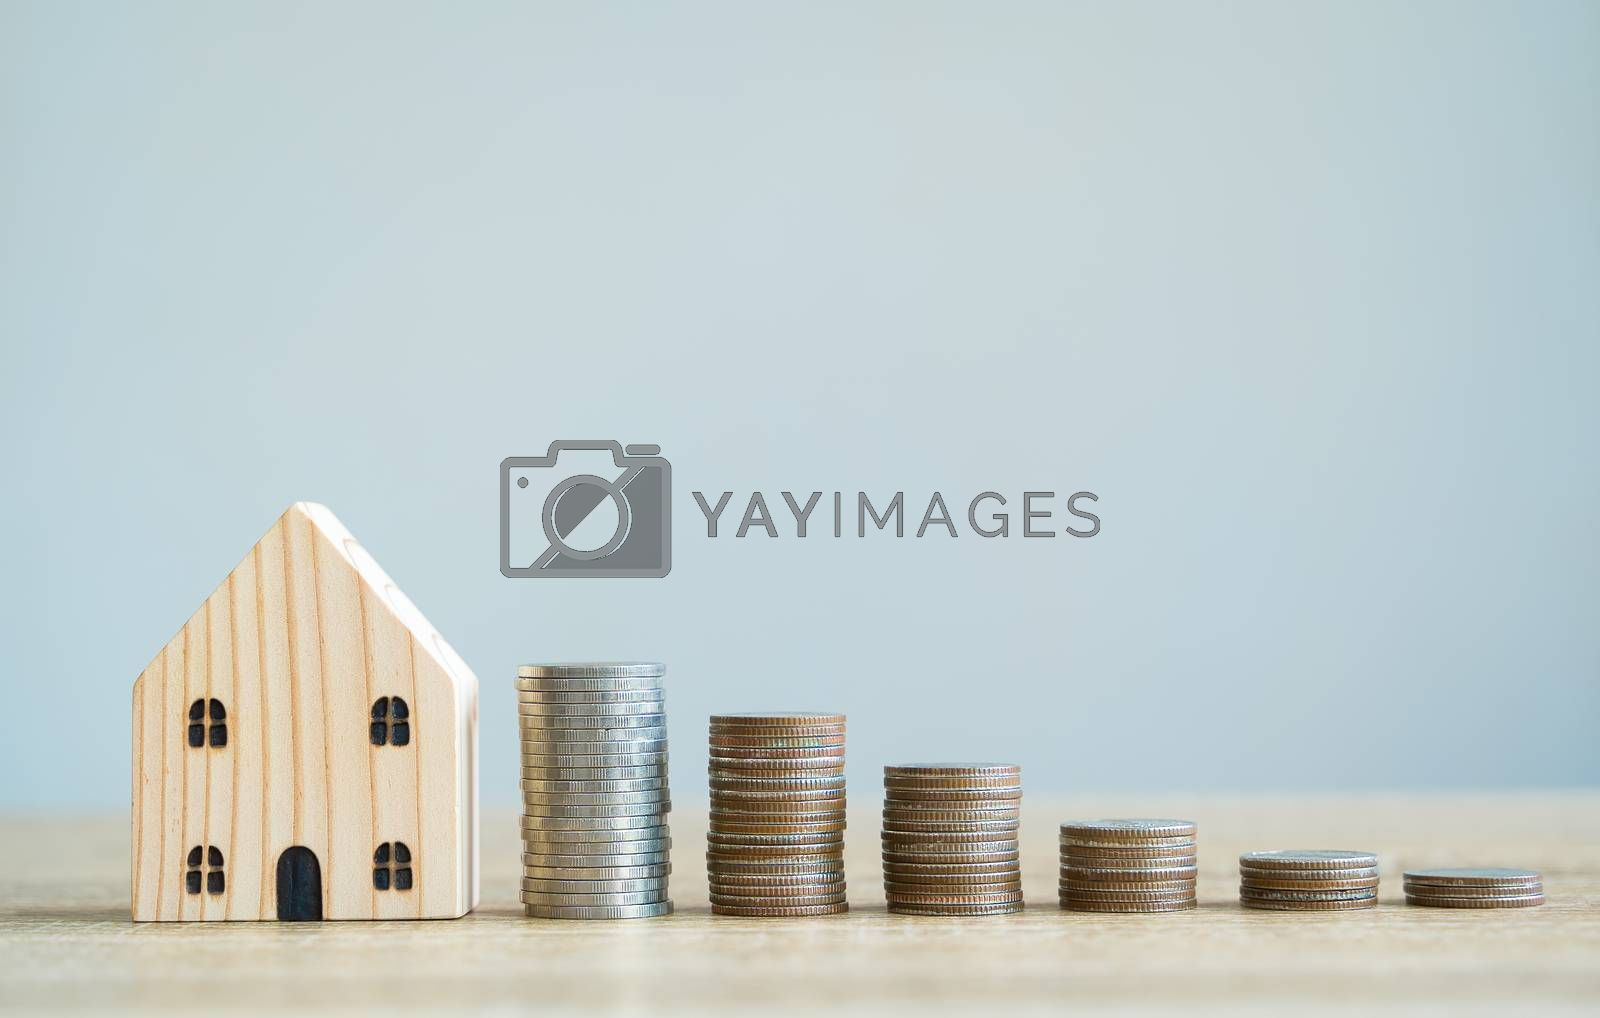 Money savings concepts. Wooden house models with stacked coins in meaning about saving money to buy a house, refinancing, investment or financial on wooden table with blur background and copy space